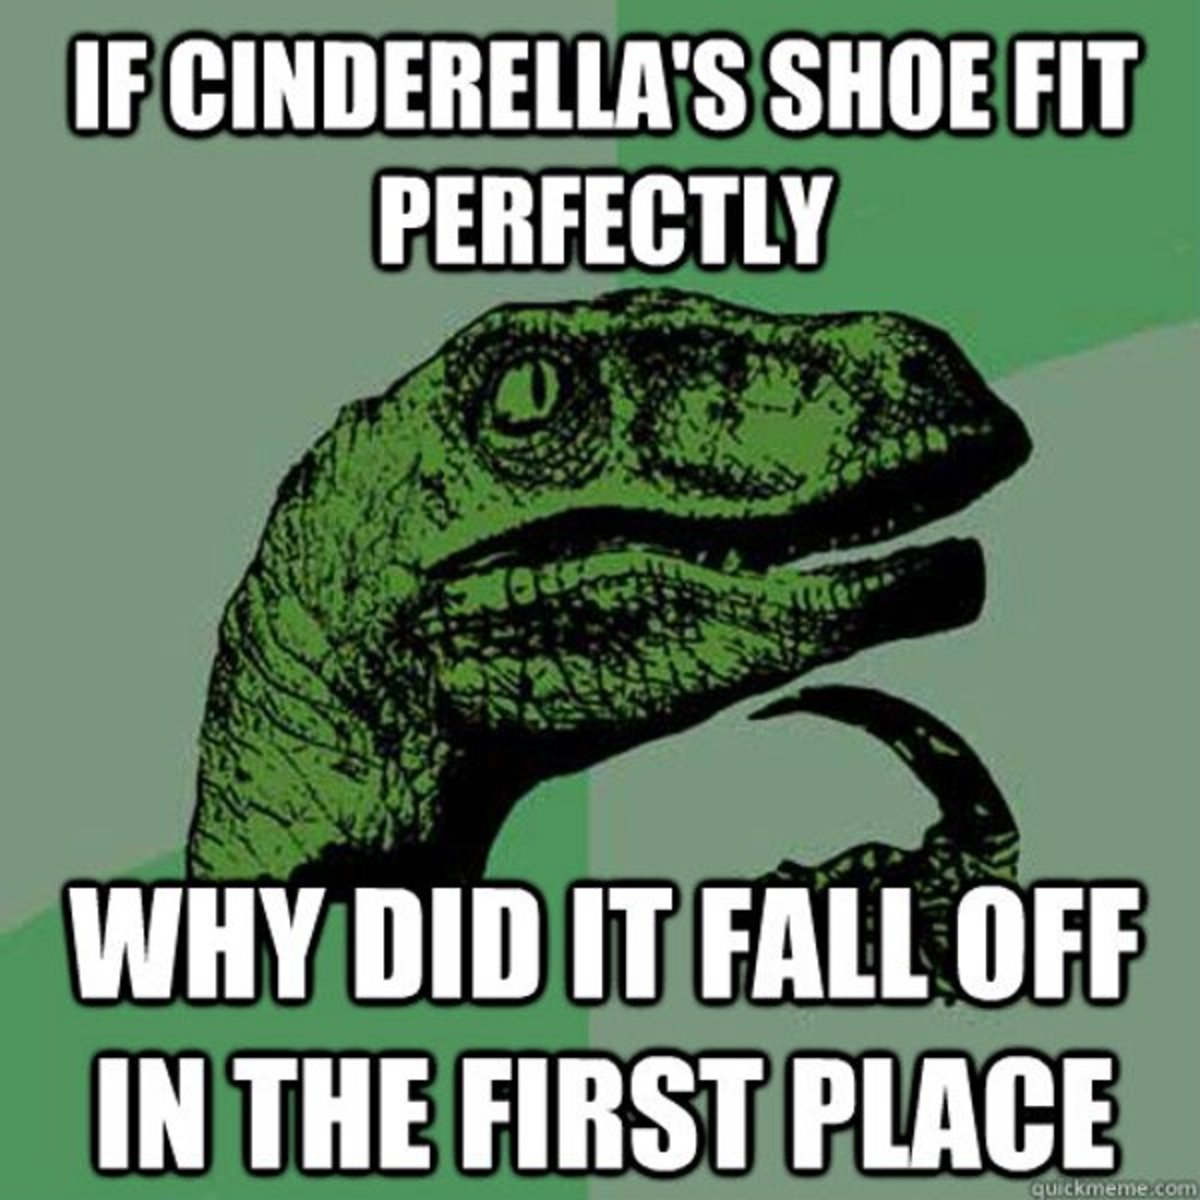 No topic is safe- The 'Philosoraptor 'strikes on shoes'